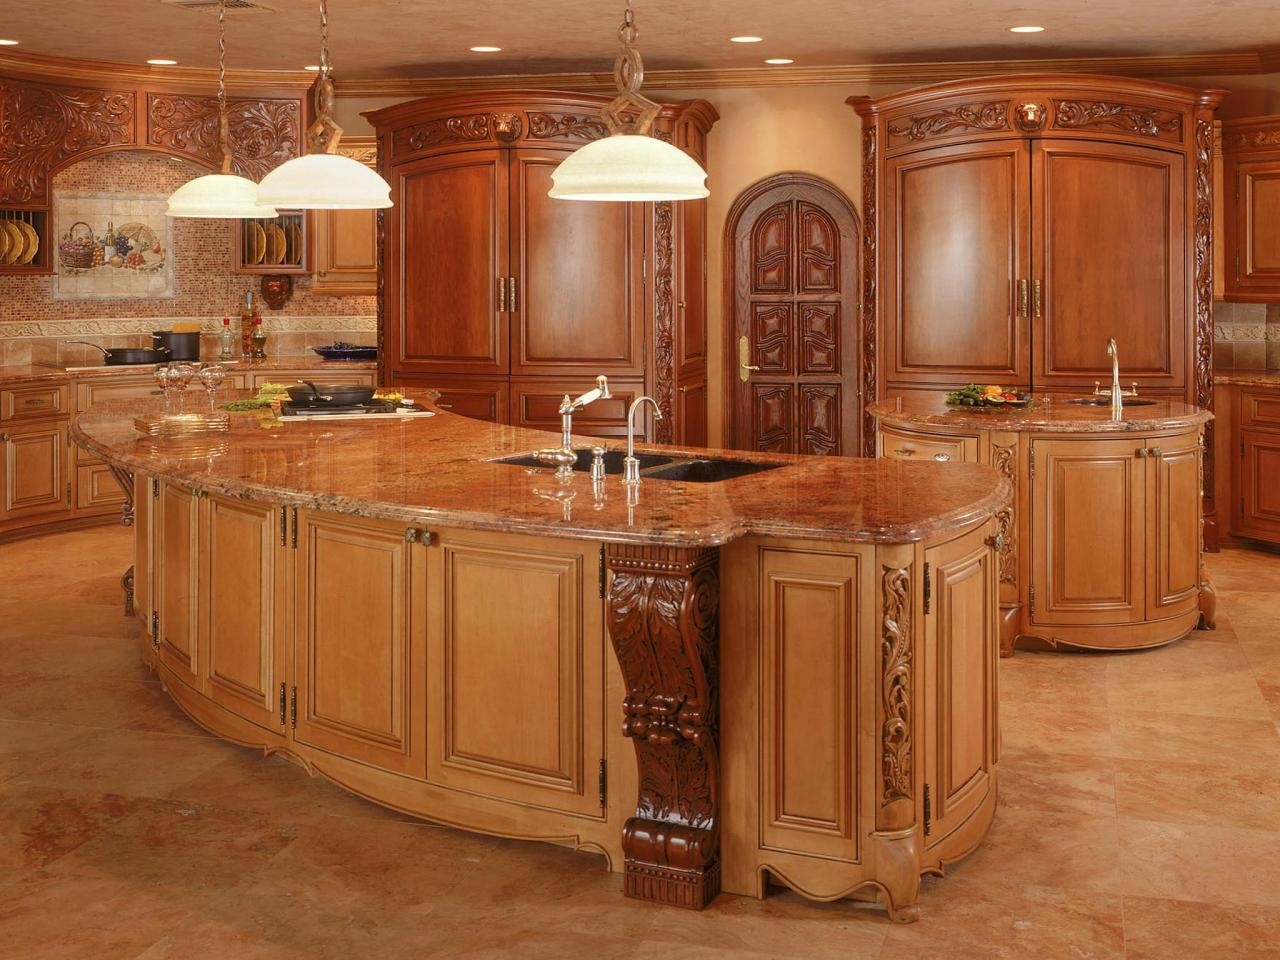 100+ [ Spanish Style Kitchen Cabinets ] | Define Kitchen Cabinet ...